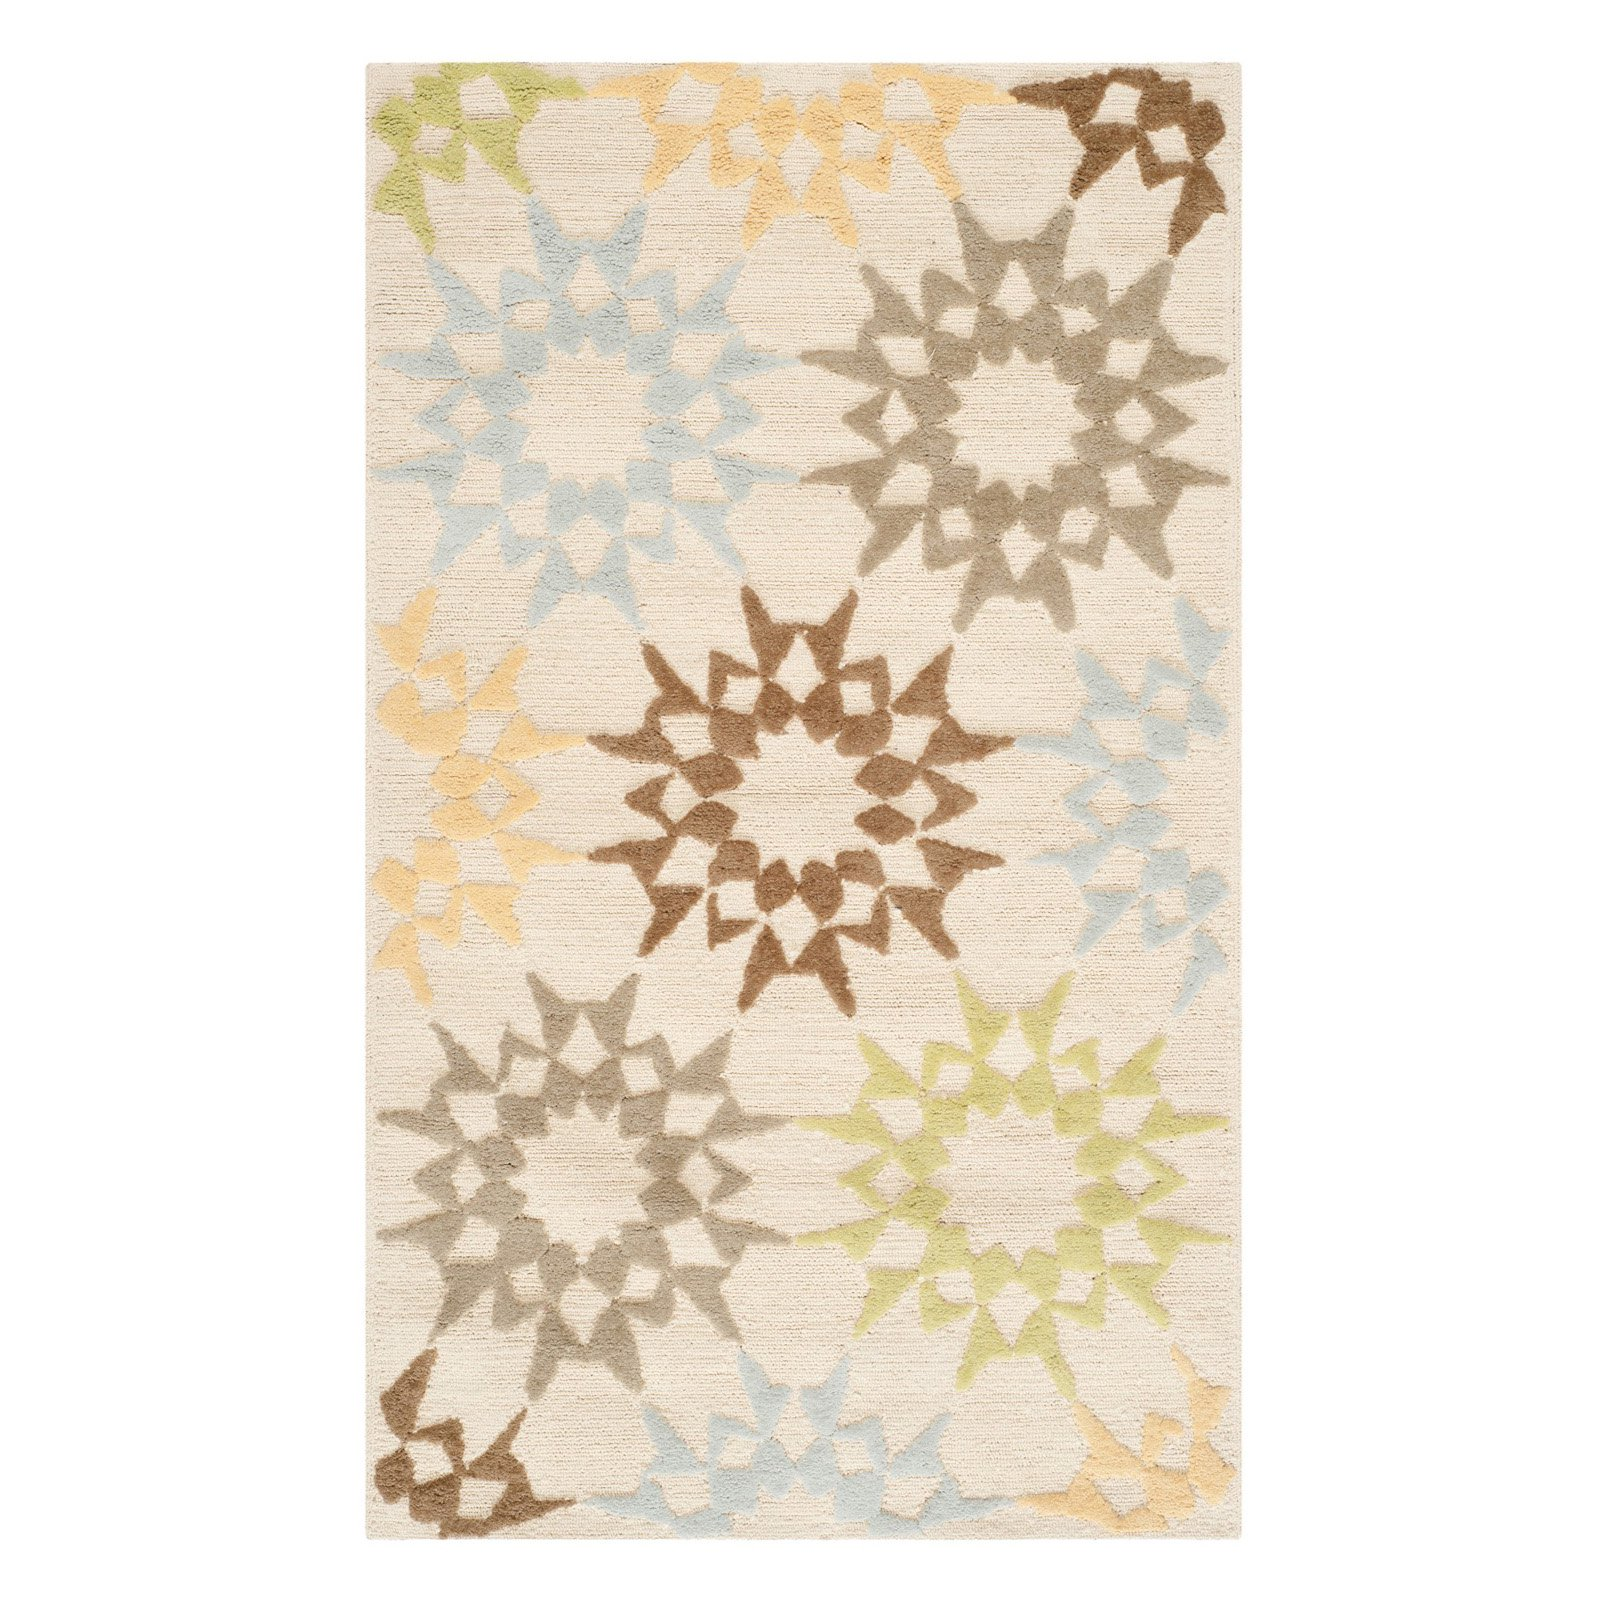 Safavieh Martha Stewart Quilt Pebble Geometric Area Rug by Safavieh